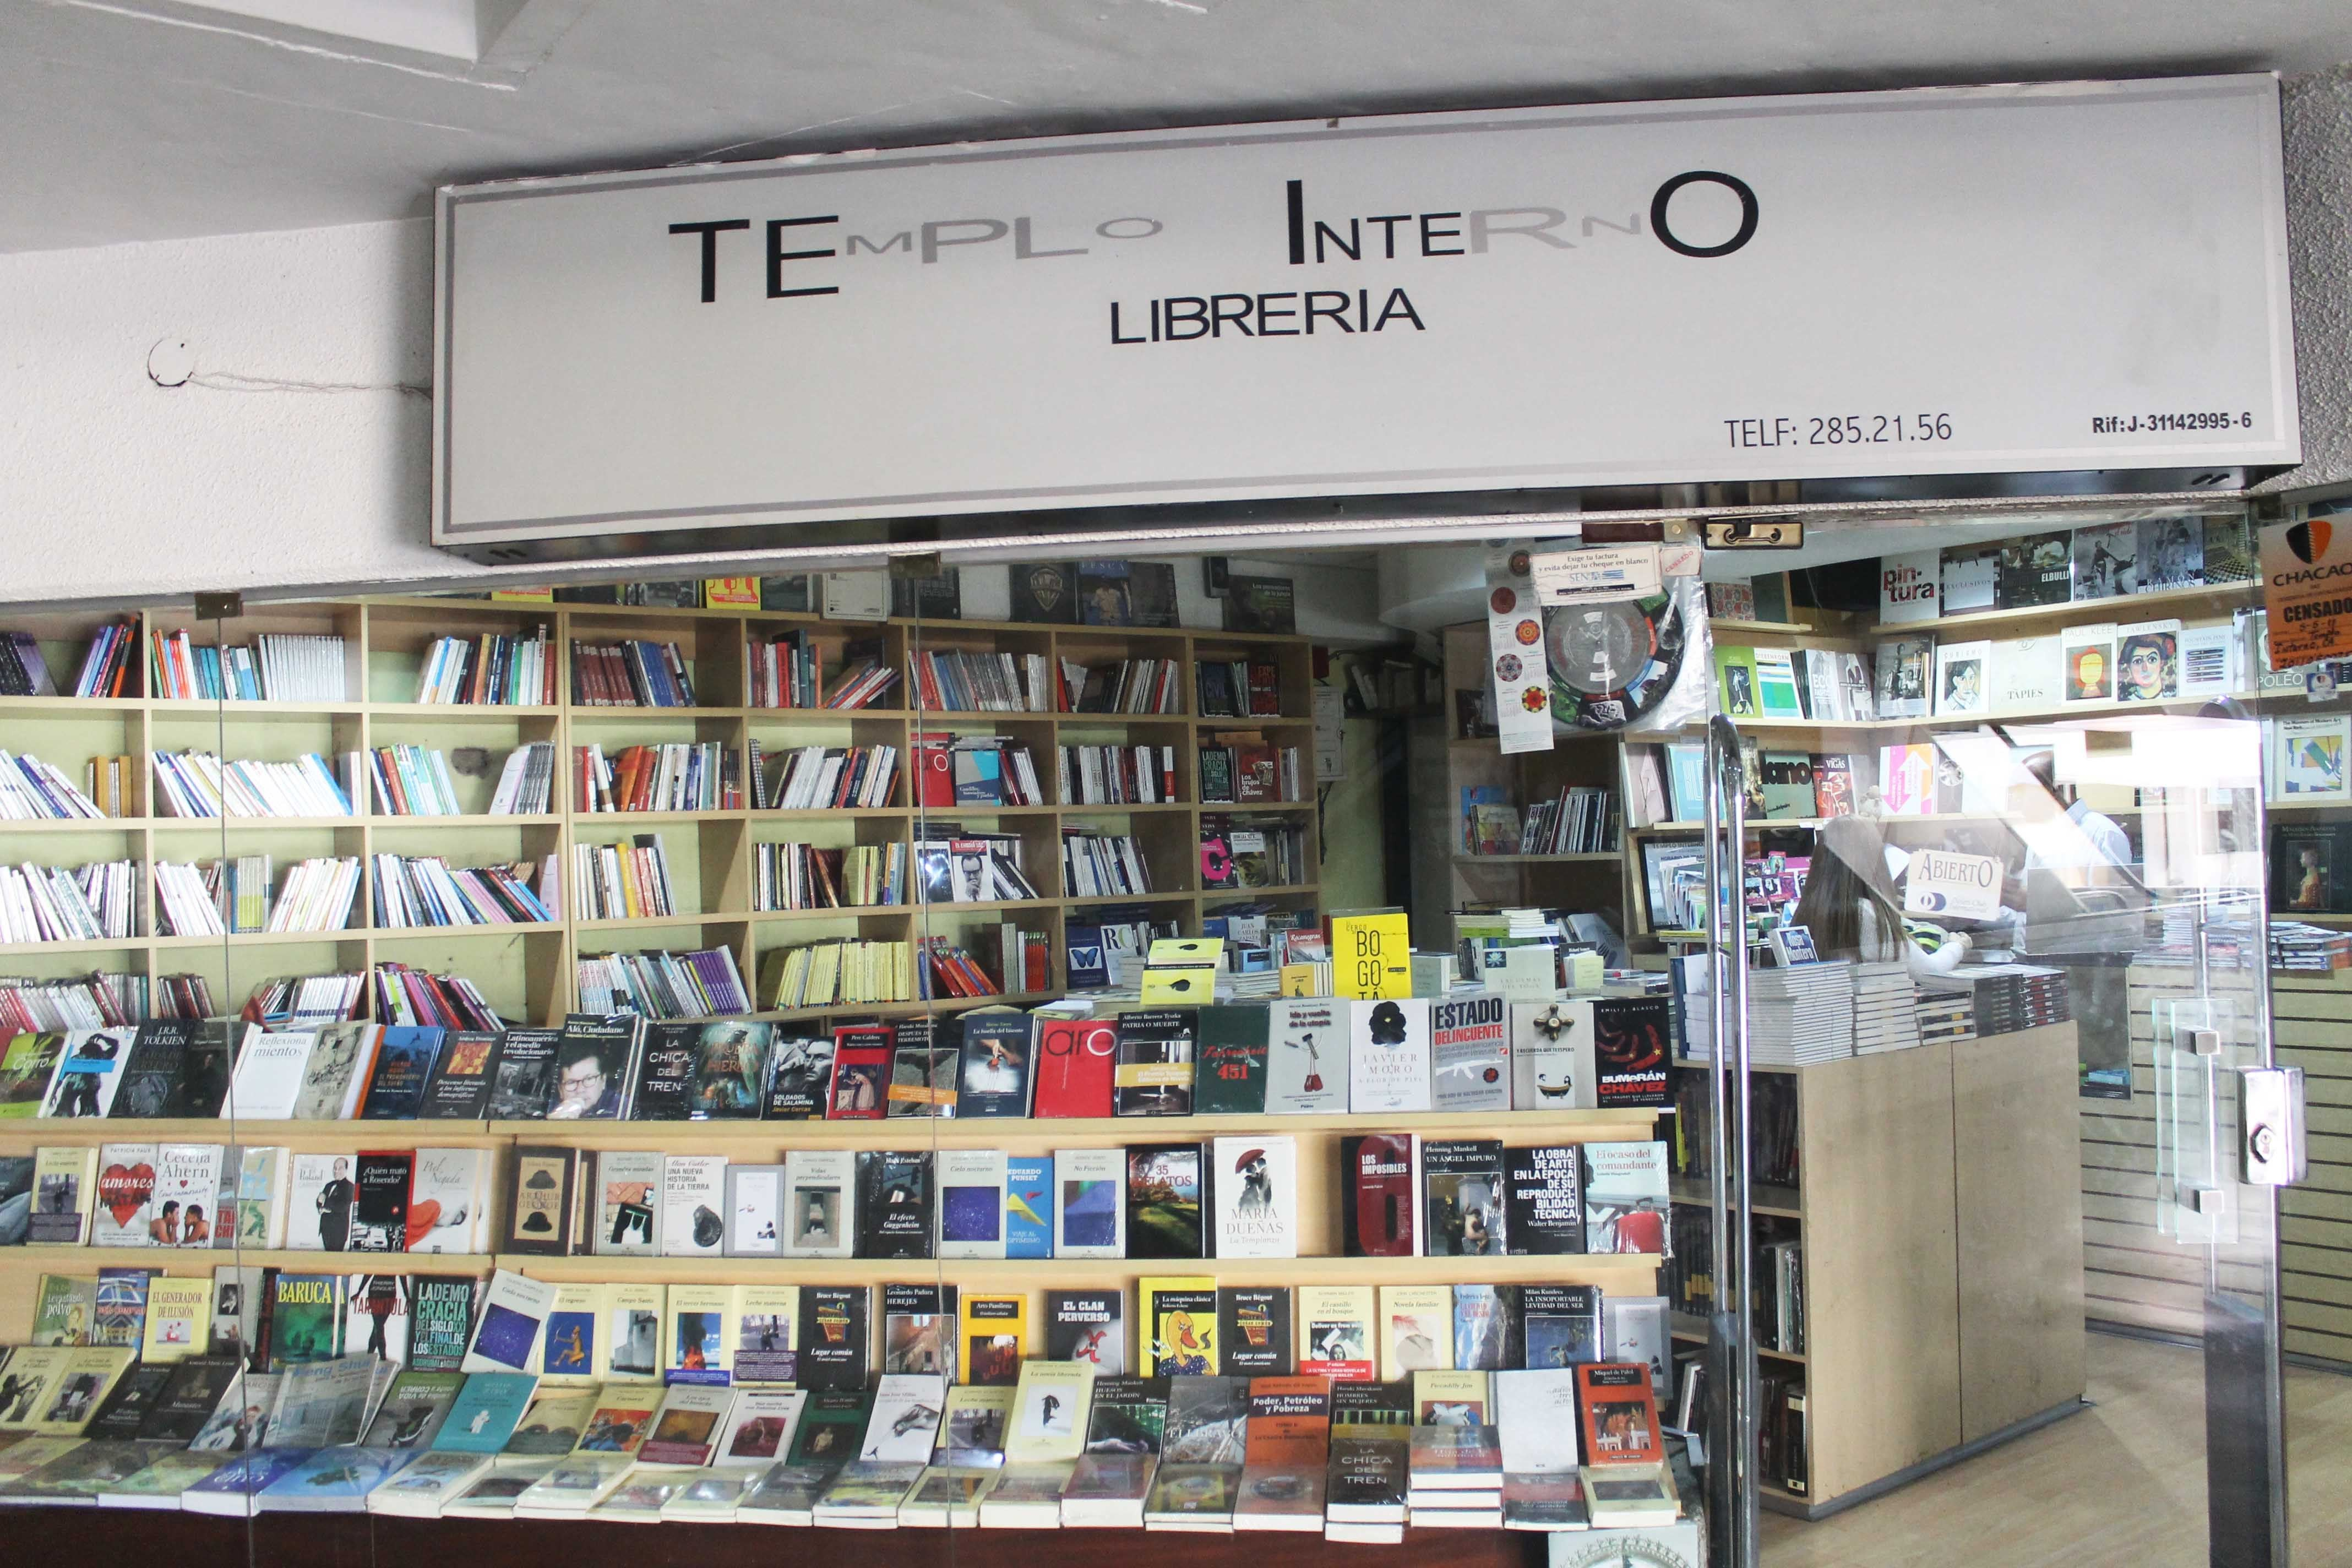 Product in Librería Templo Interno